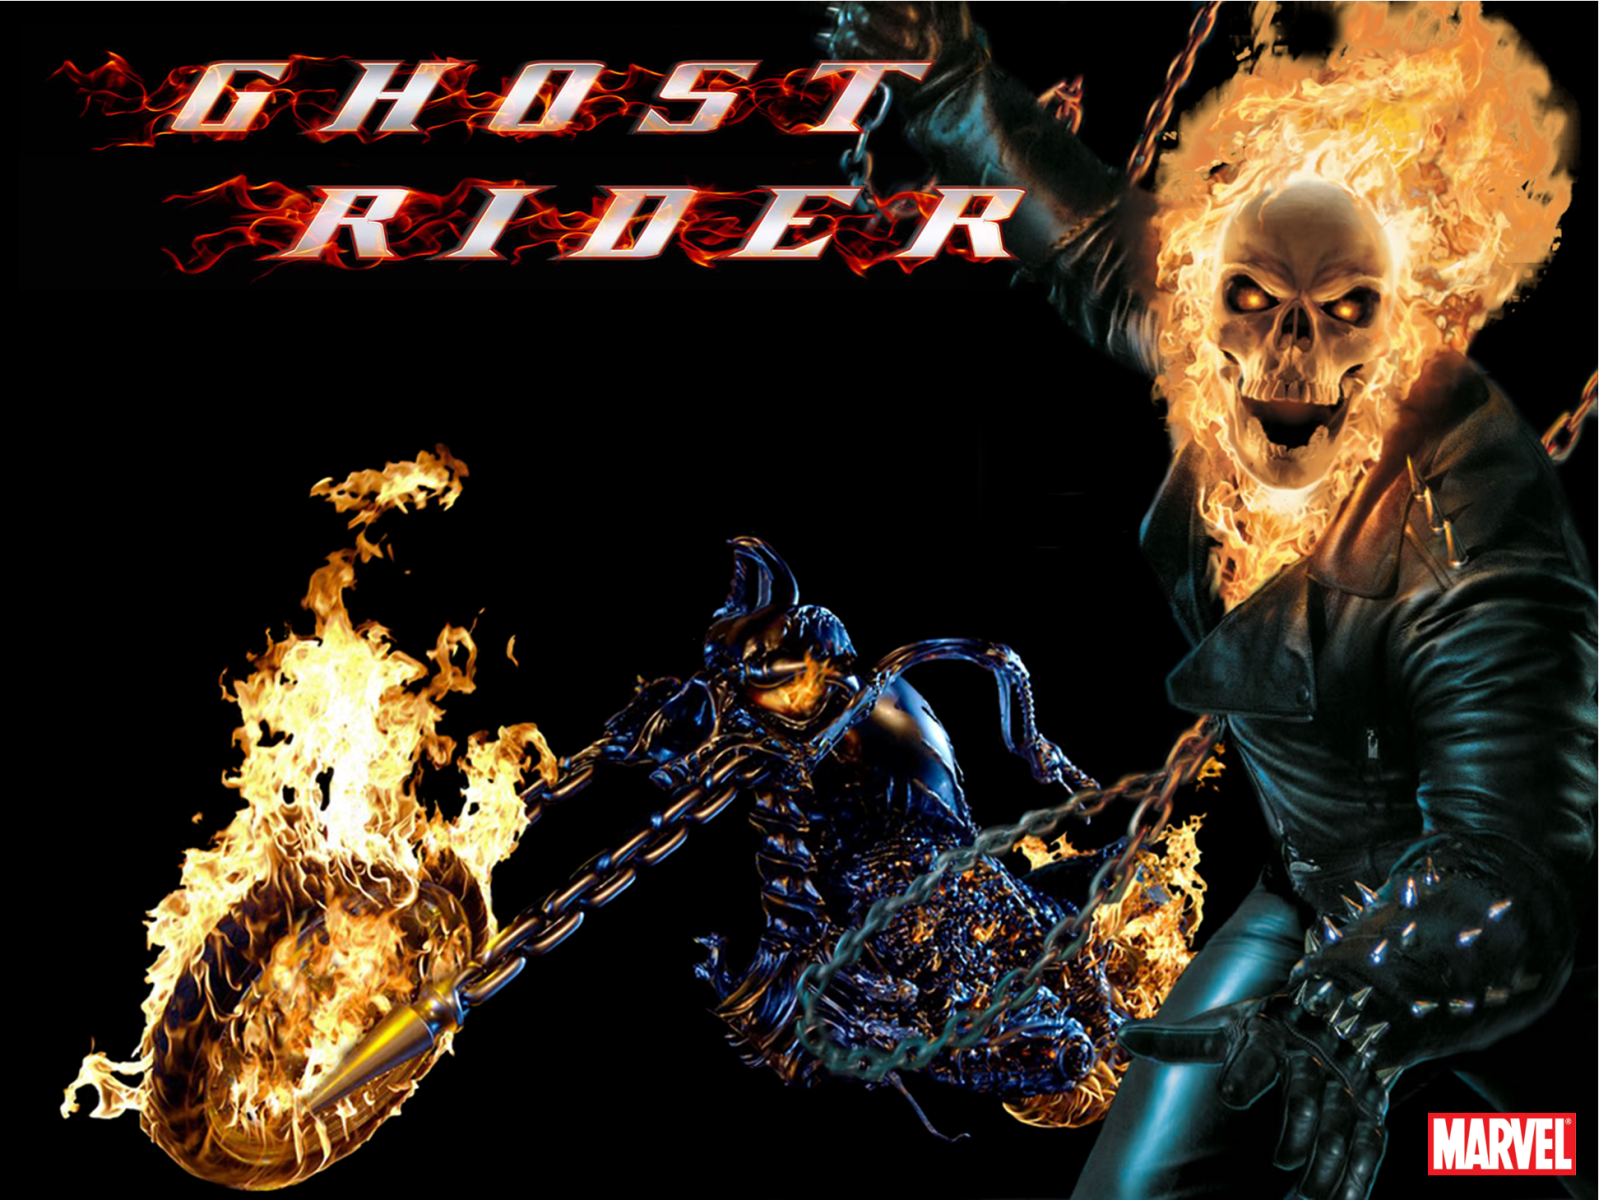 1152x864 Ghost Rider desktop wallpapers and stock photos